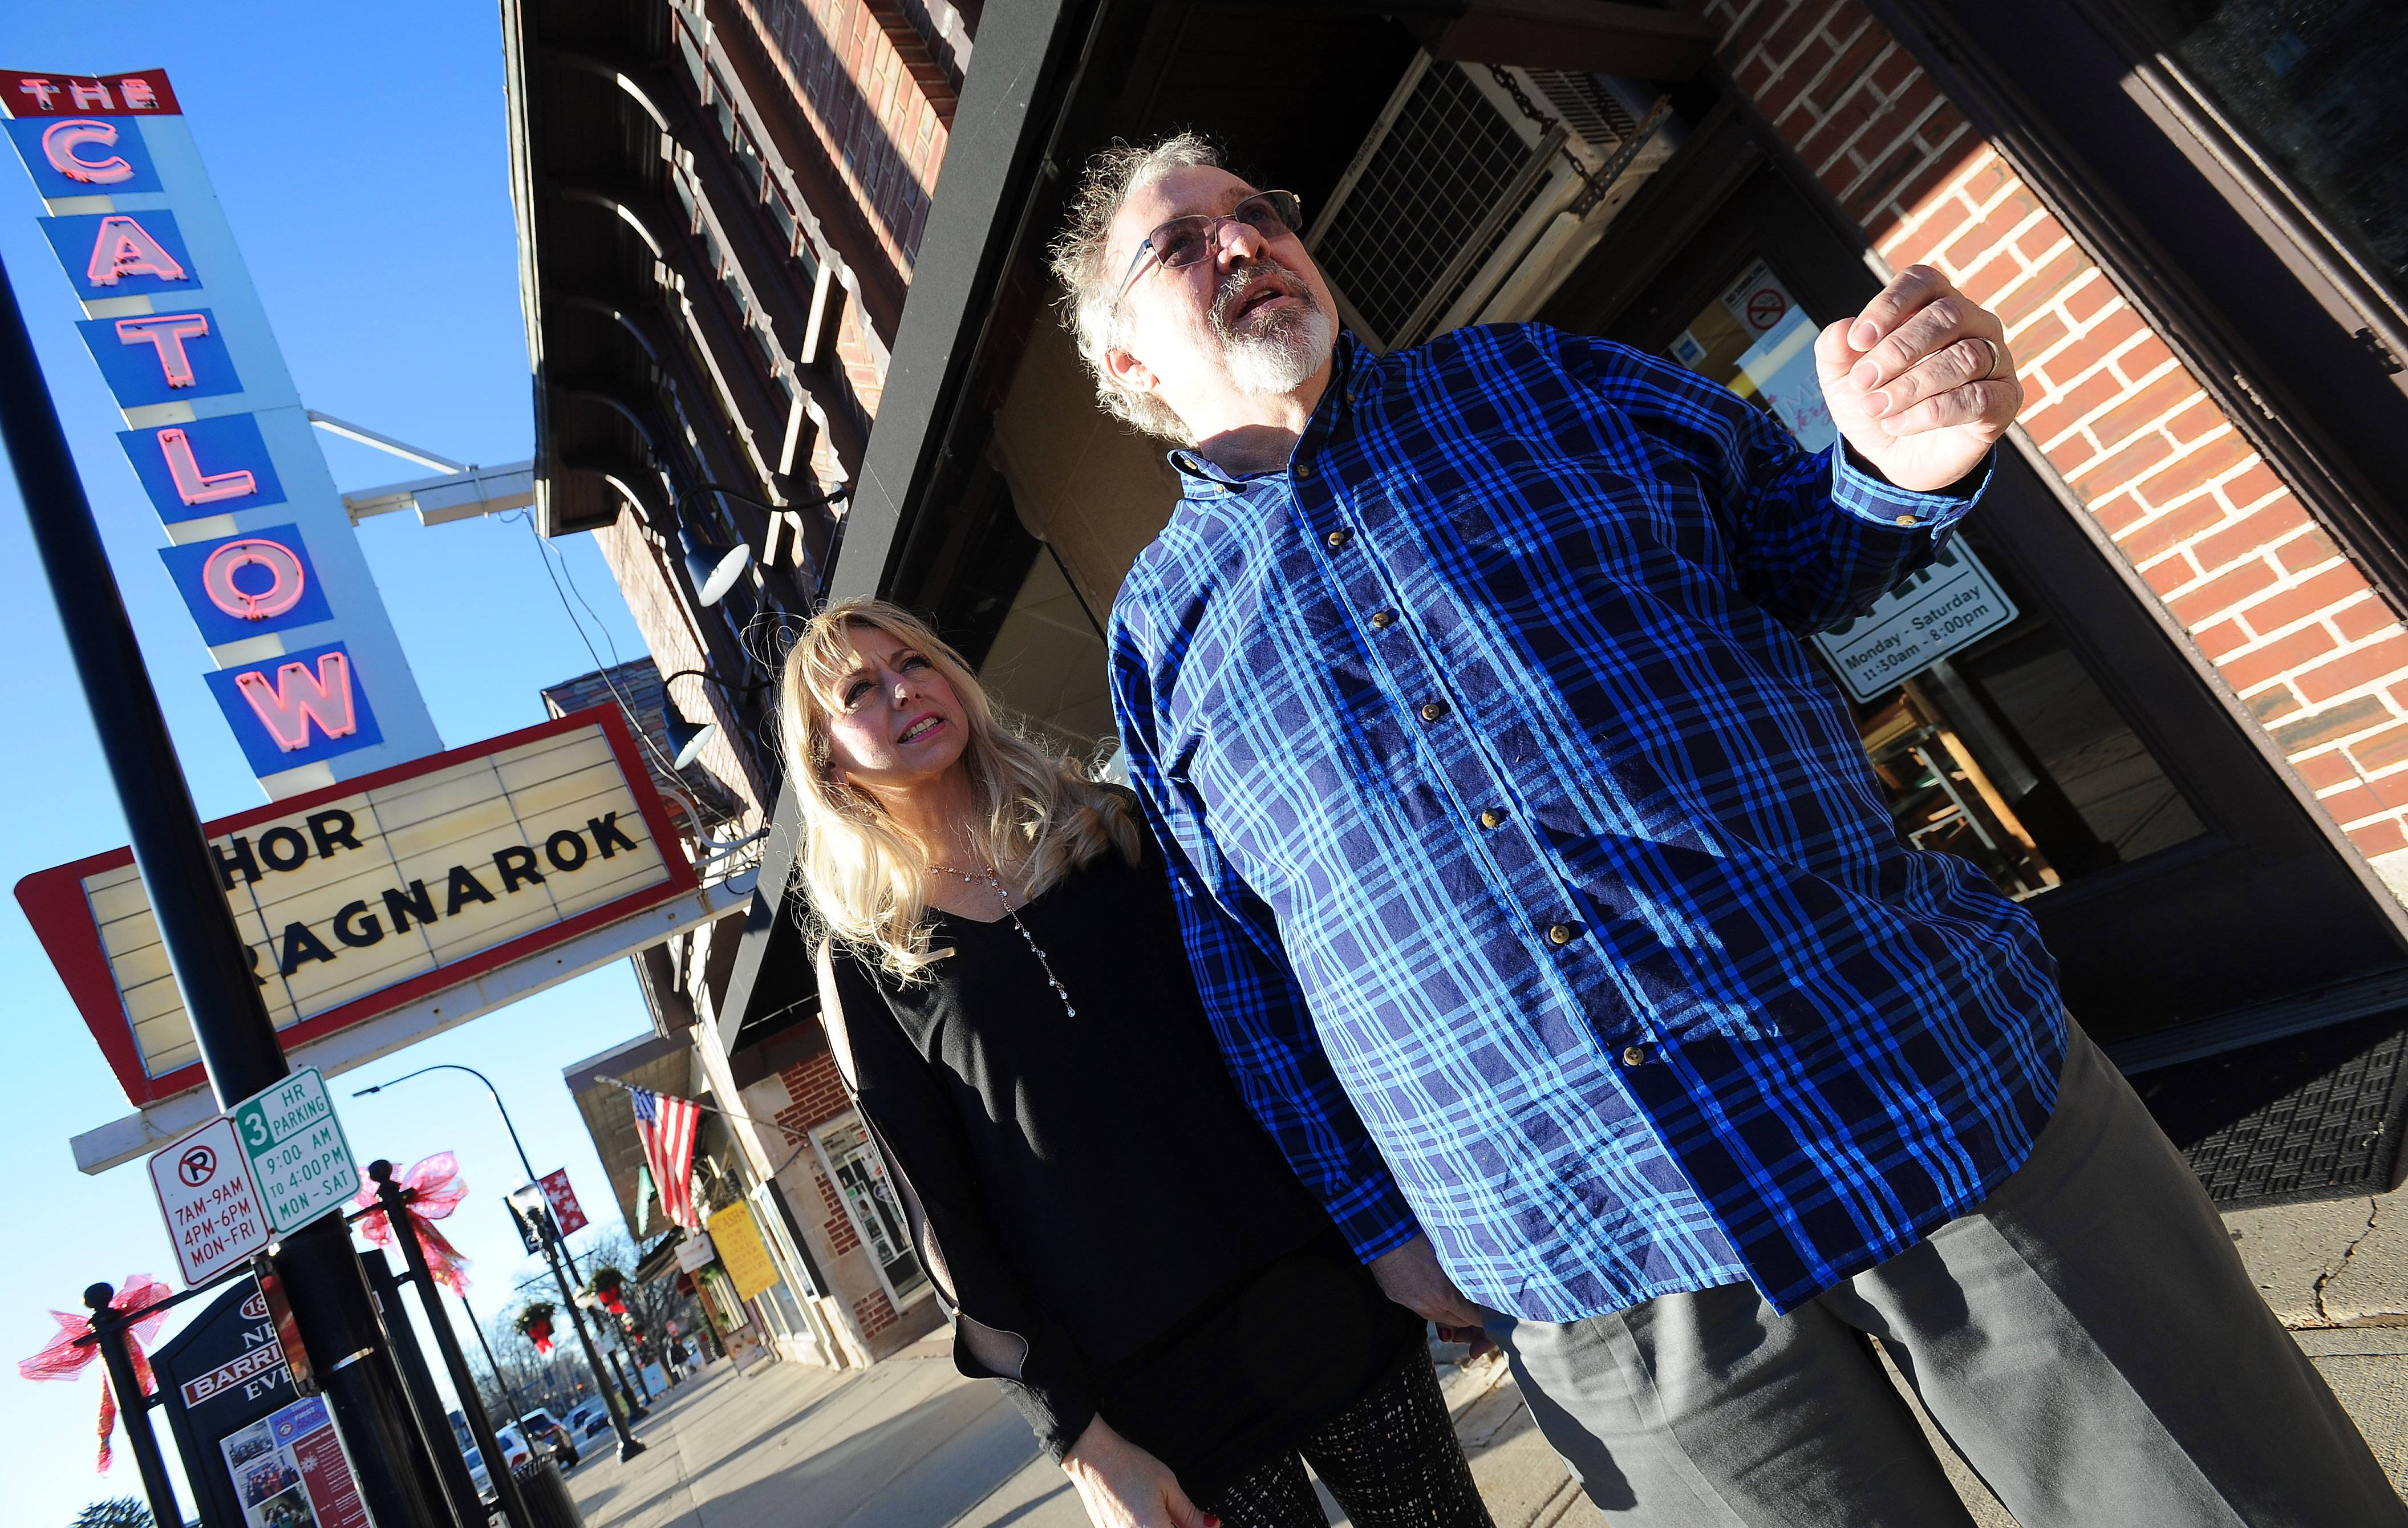 Tim O'Connor, owner of the Catlow Theater and the adjacent Showtime Eatery in downtown Barrington, and his wife, Laura, hope to raise $40,000 through online crowdfunding to help pay for improvements. Here they are outside Showtime, which has a new awning.